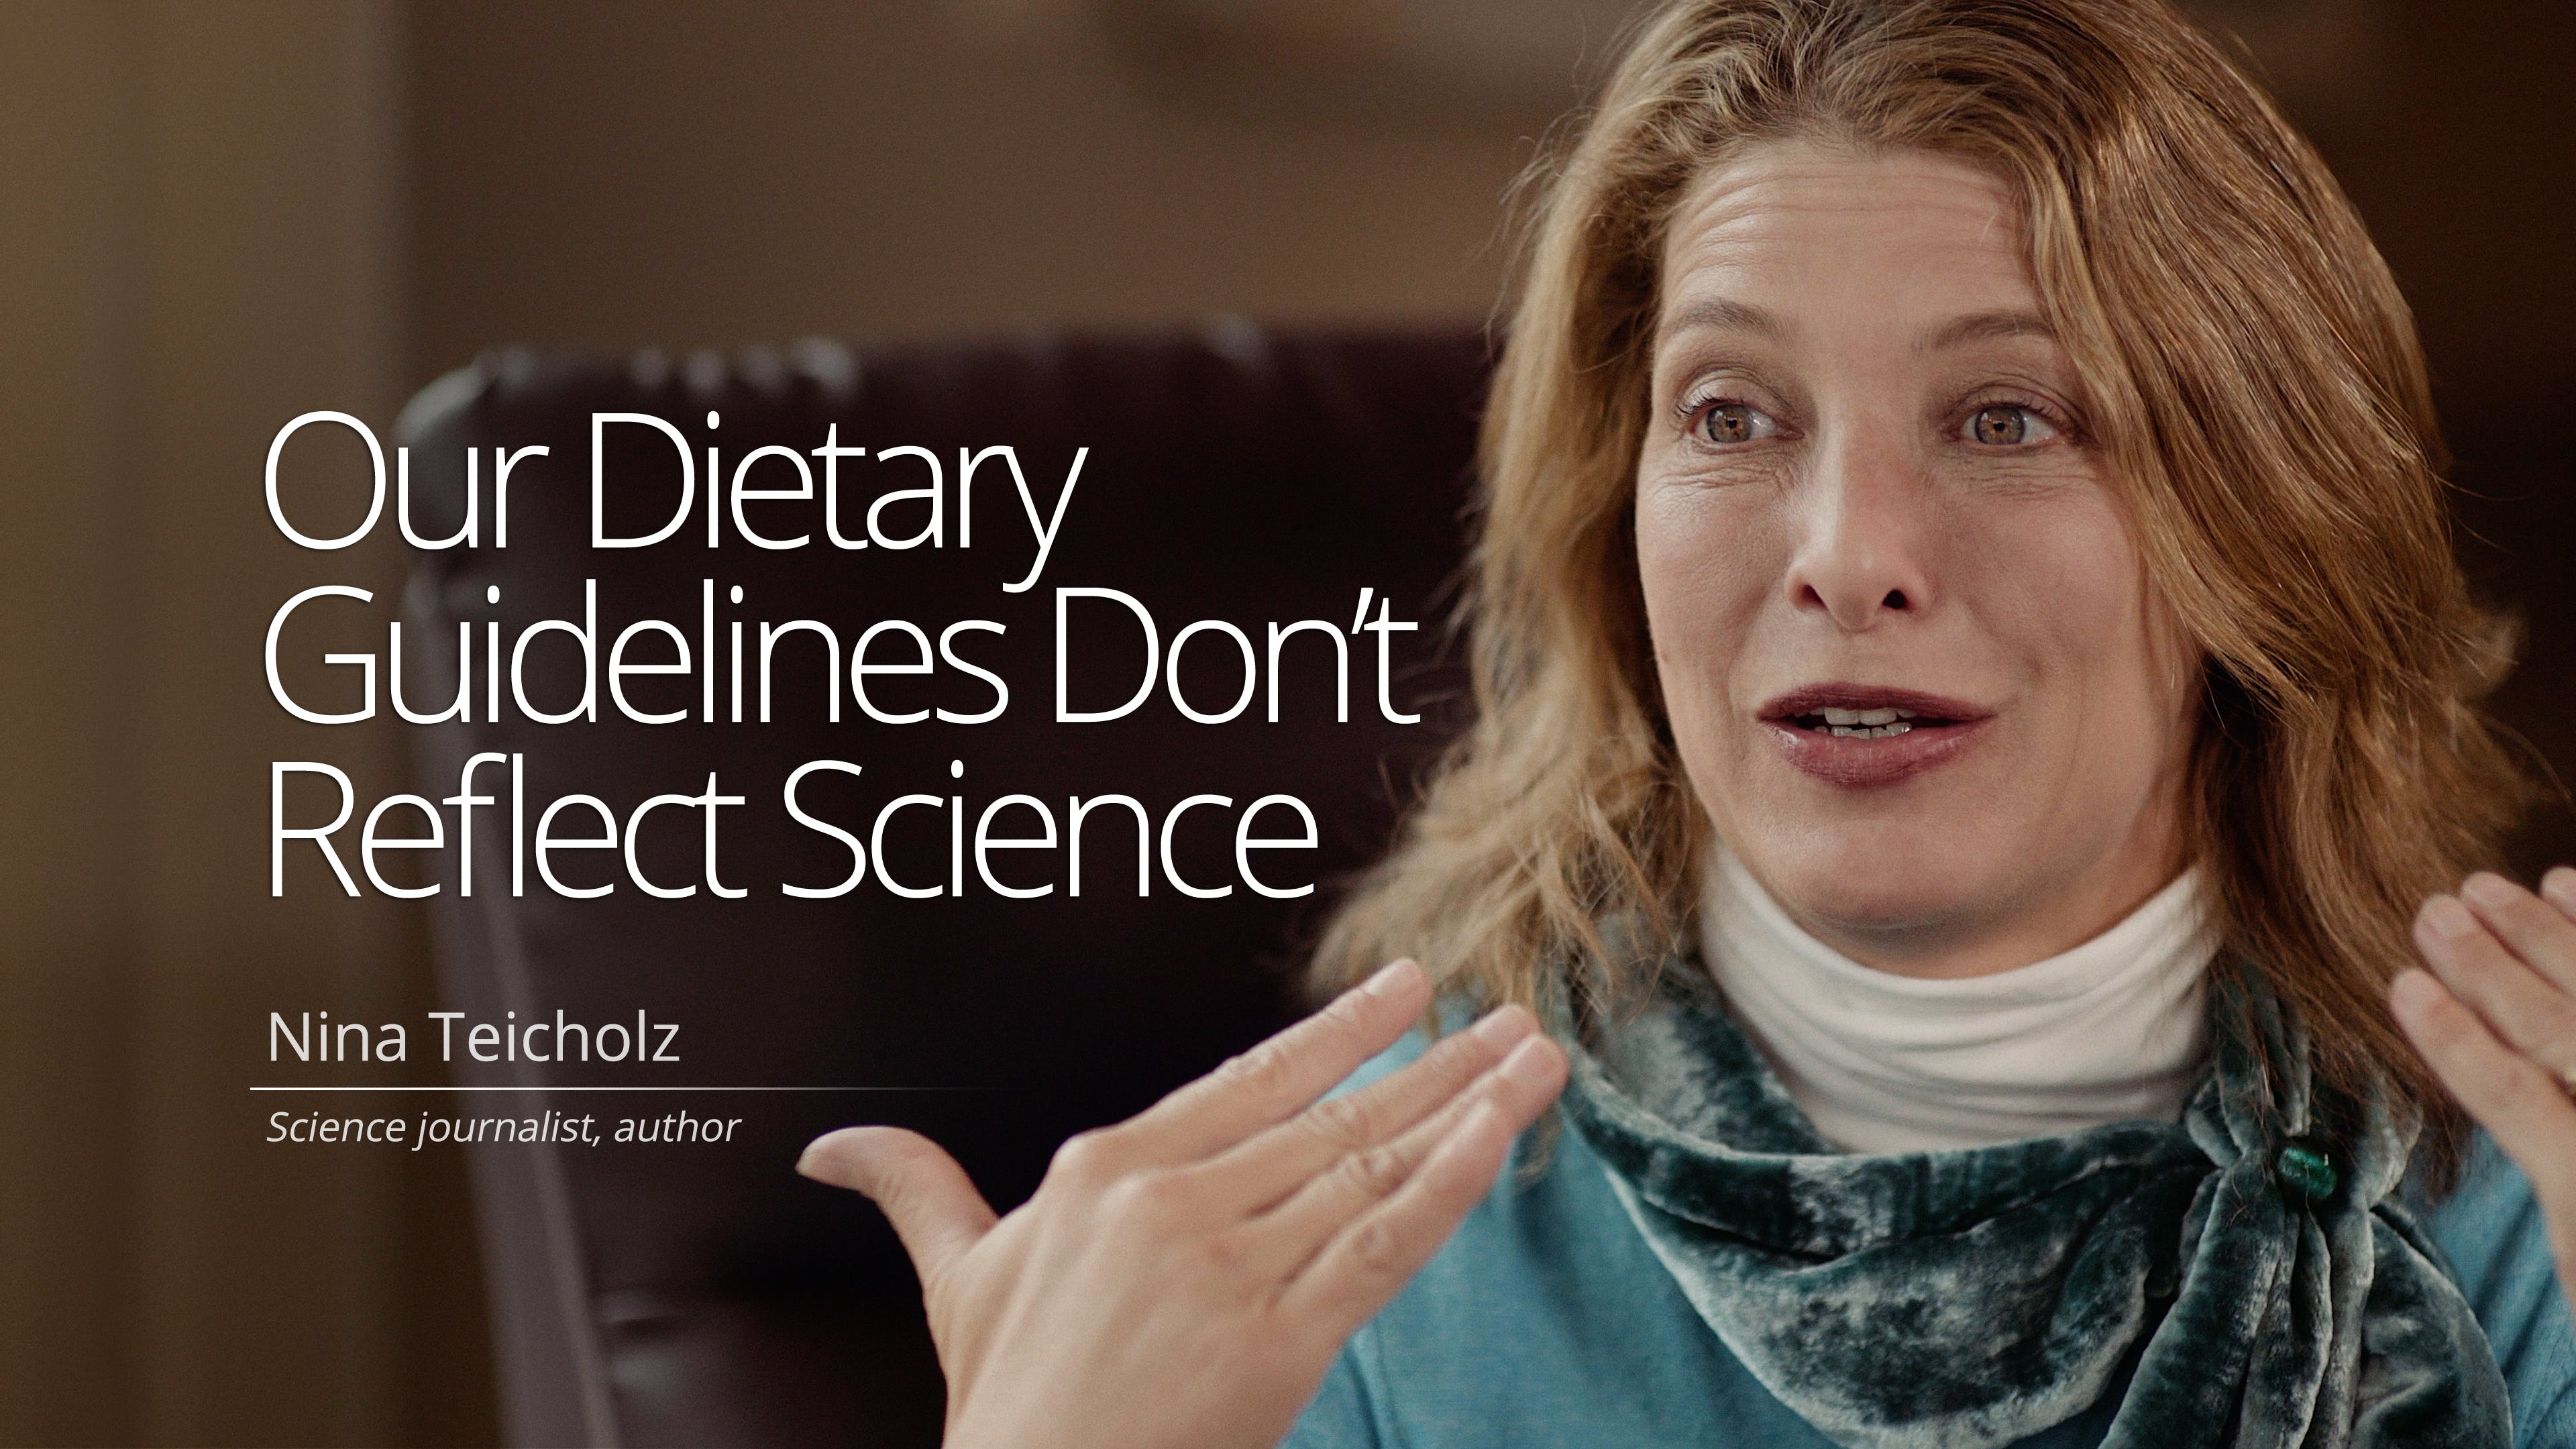 Why our dietary guidelines are wrong